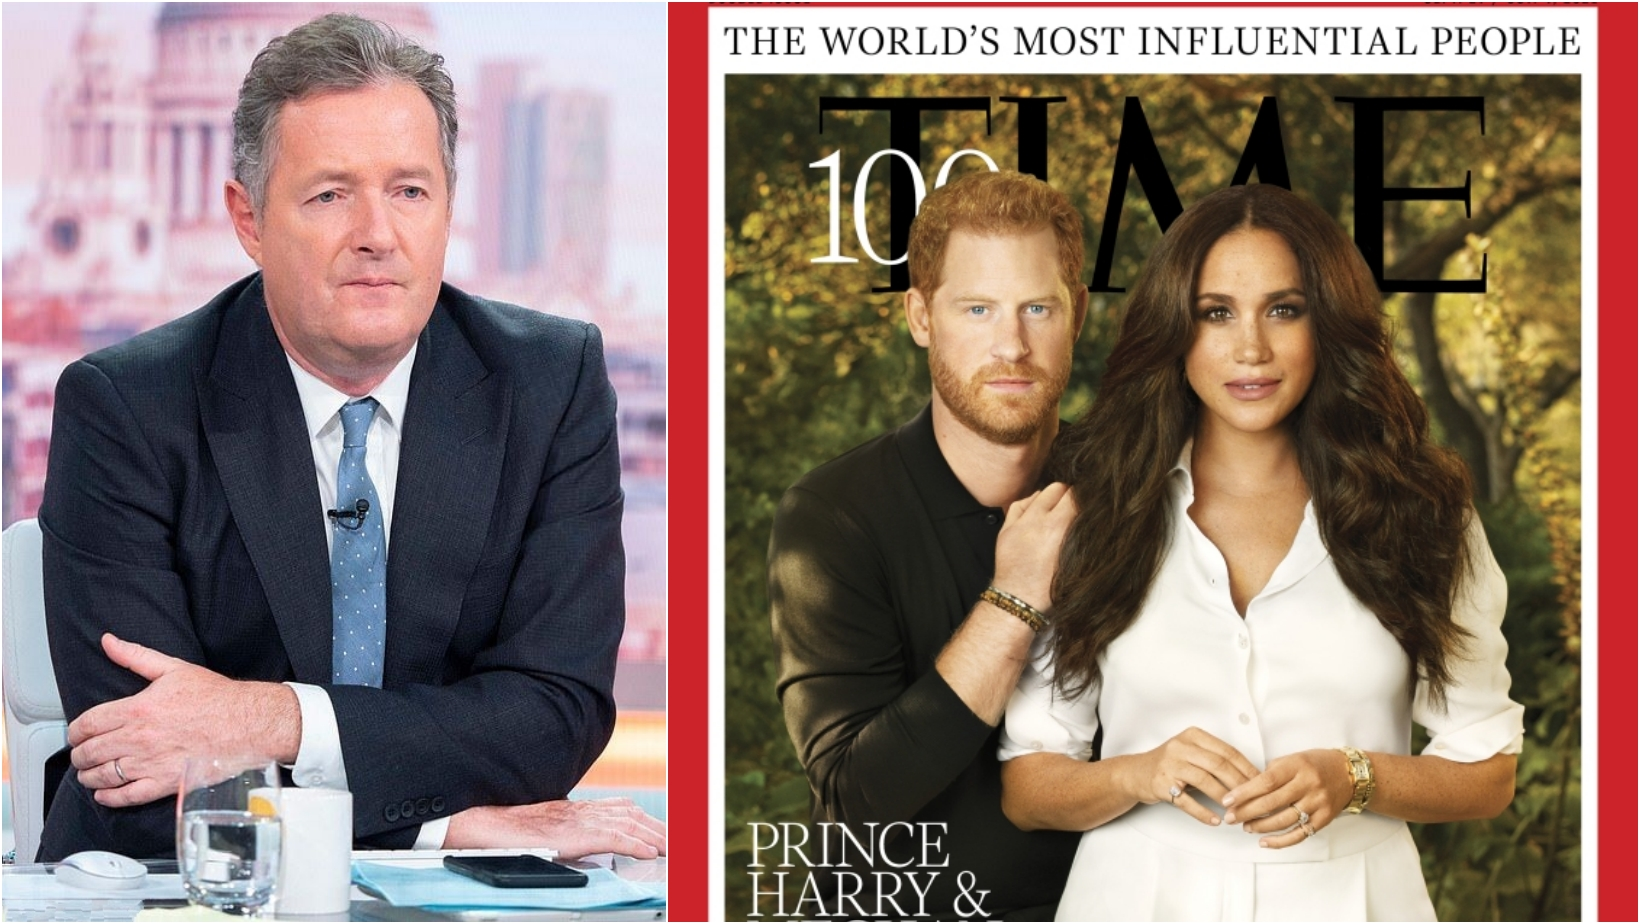 6 facebook cover 26.jpg - Piers Morgan Trolled Prince Harry And Meghan Markle's Time Magazine's 'Most Influential People' Cover